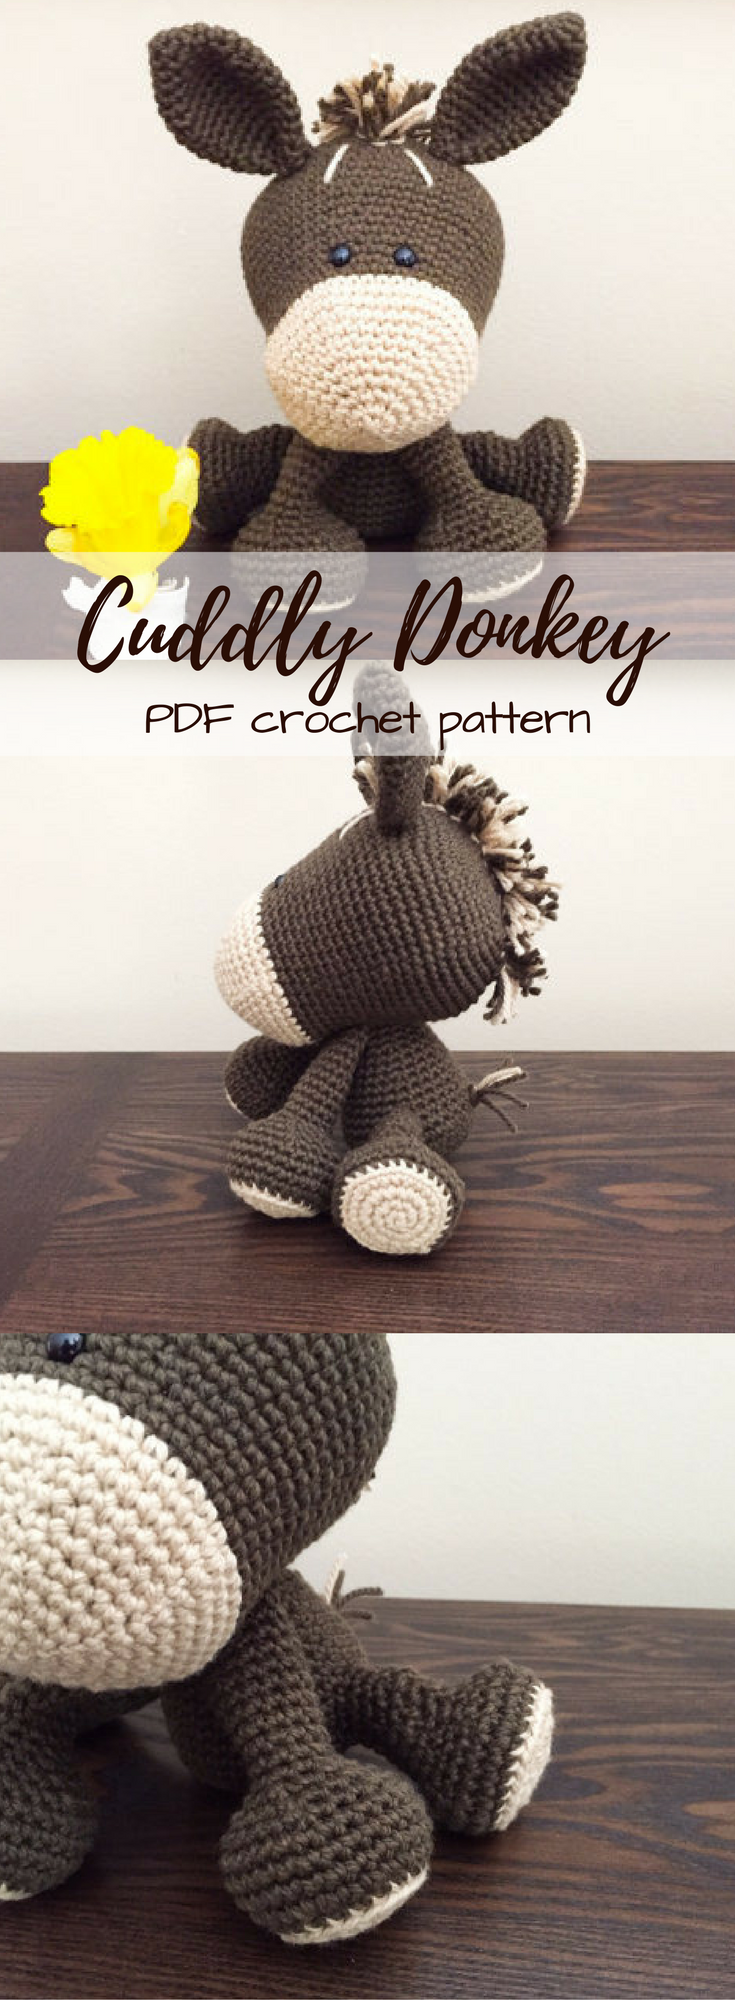 Cute little cuddly donkey crochet pattern to make. Love this humble ...